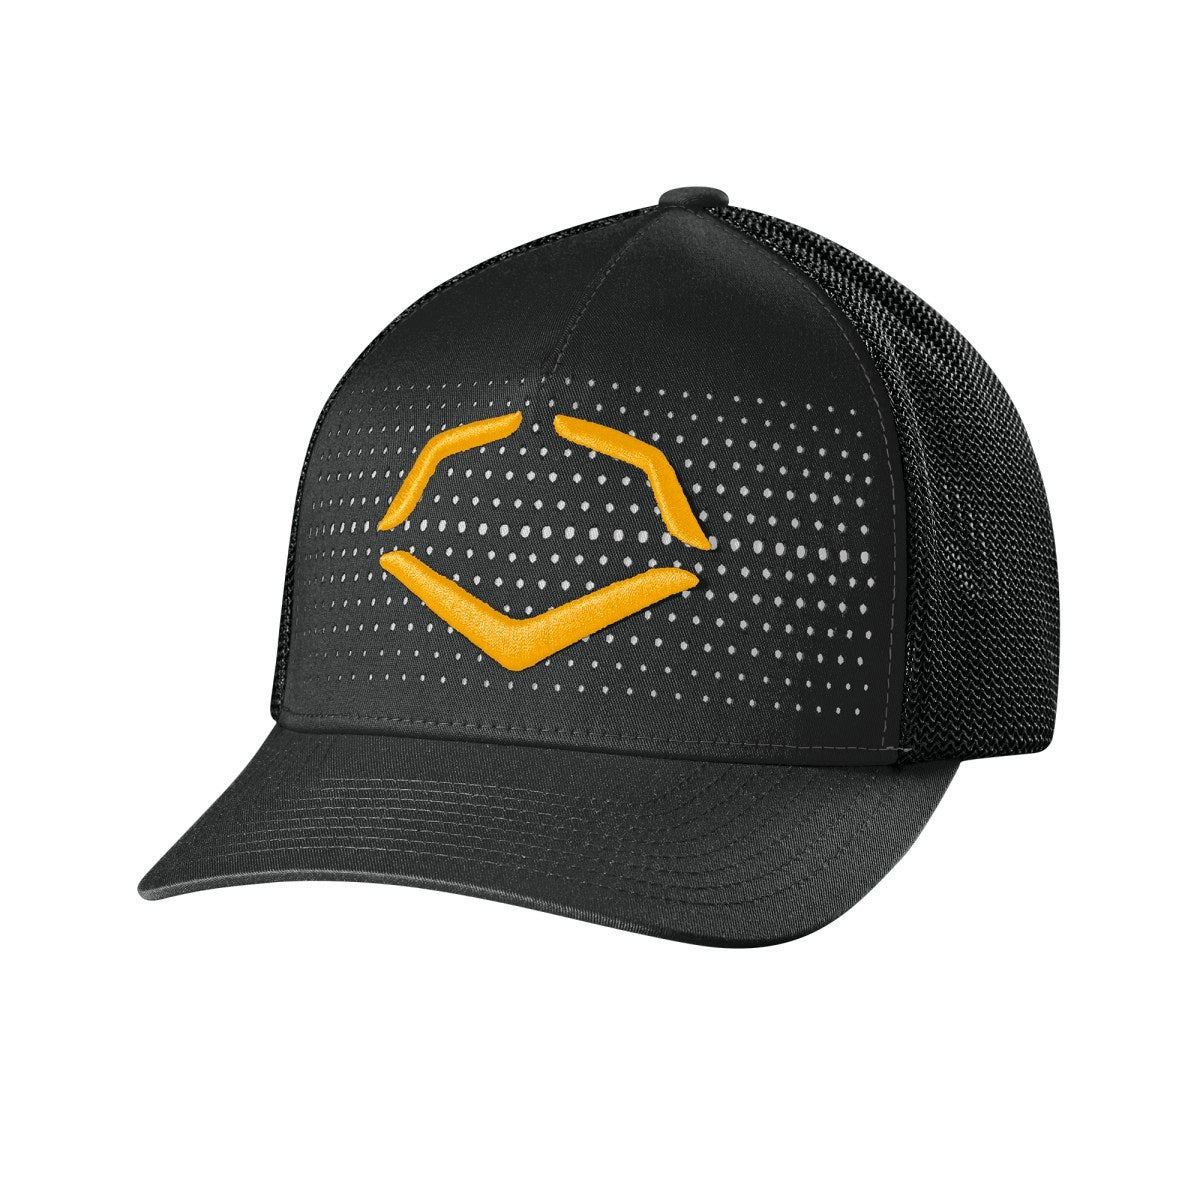 EvoShield XVT Flexfit Hat